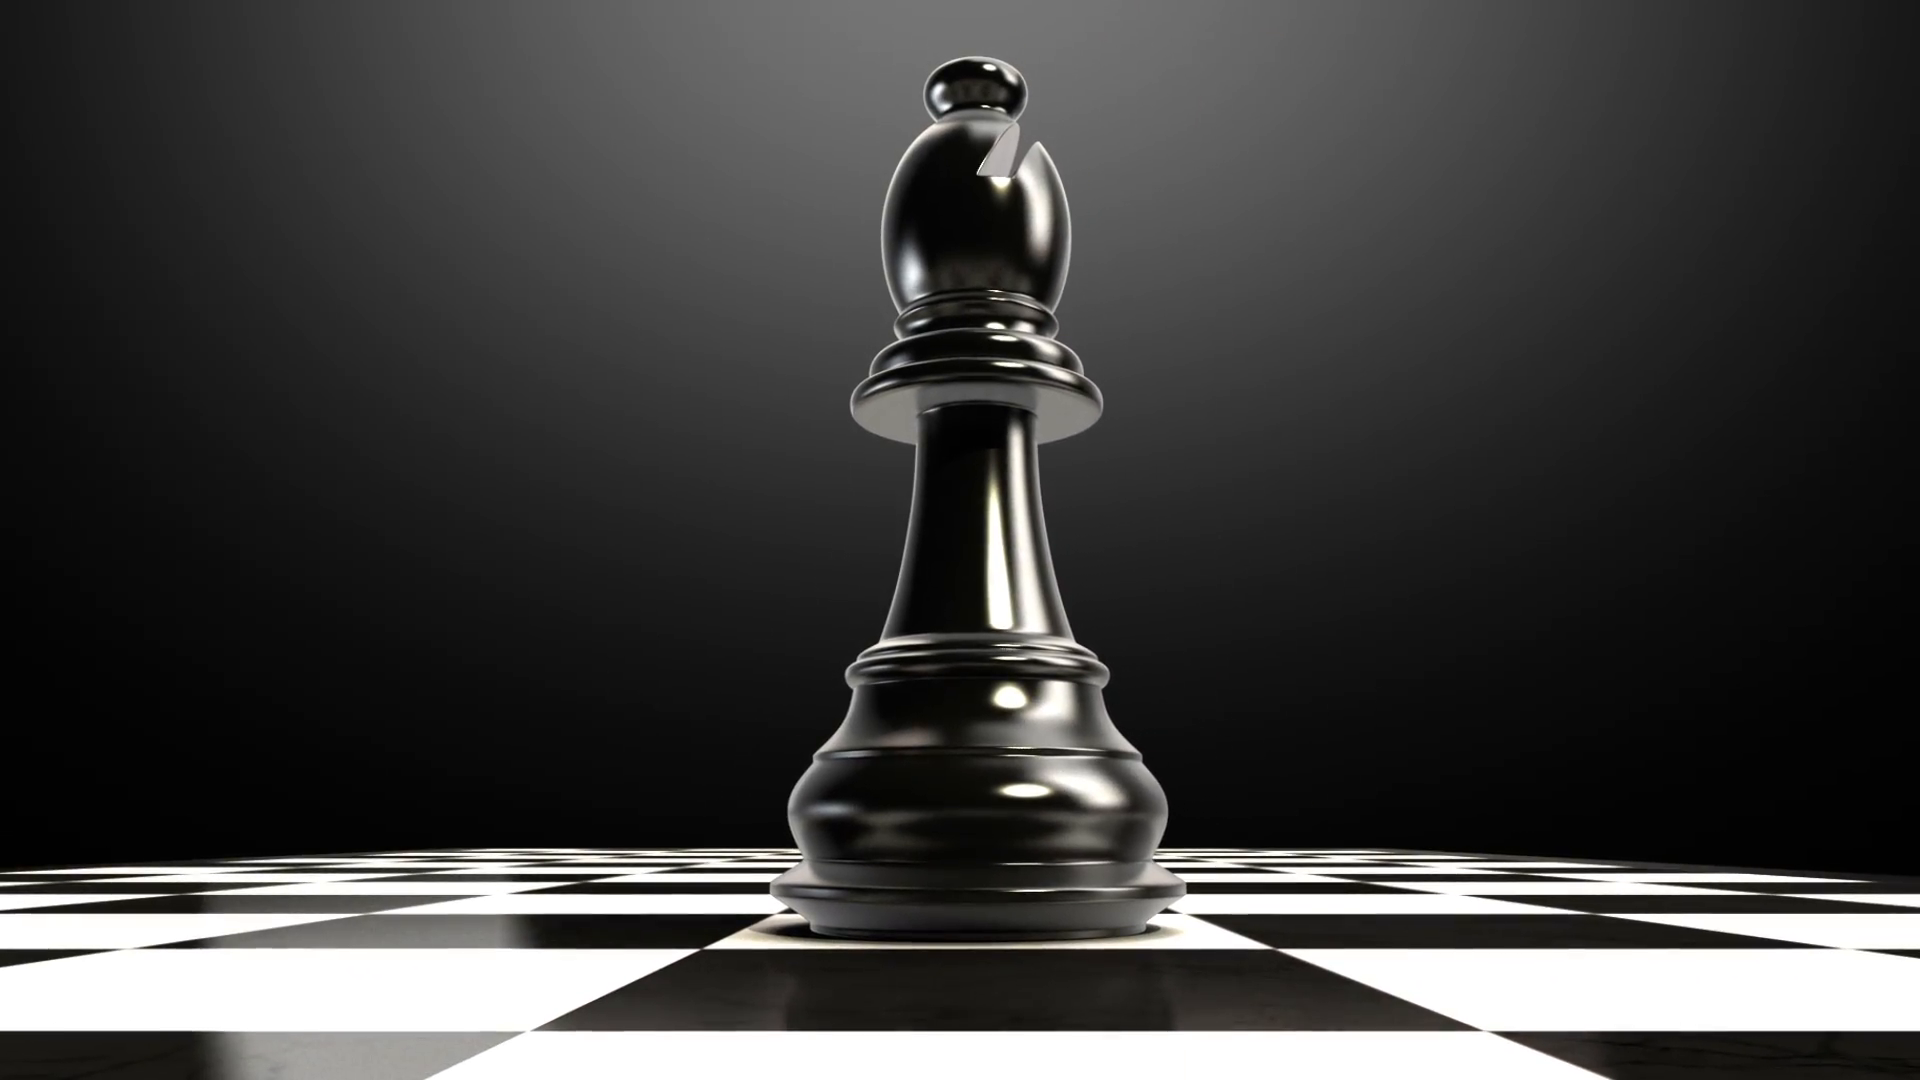 put-the-chess-piece-on-a-chessboard-ending-bishop-animation_effojkdux__F0006.png